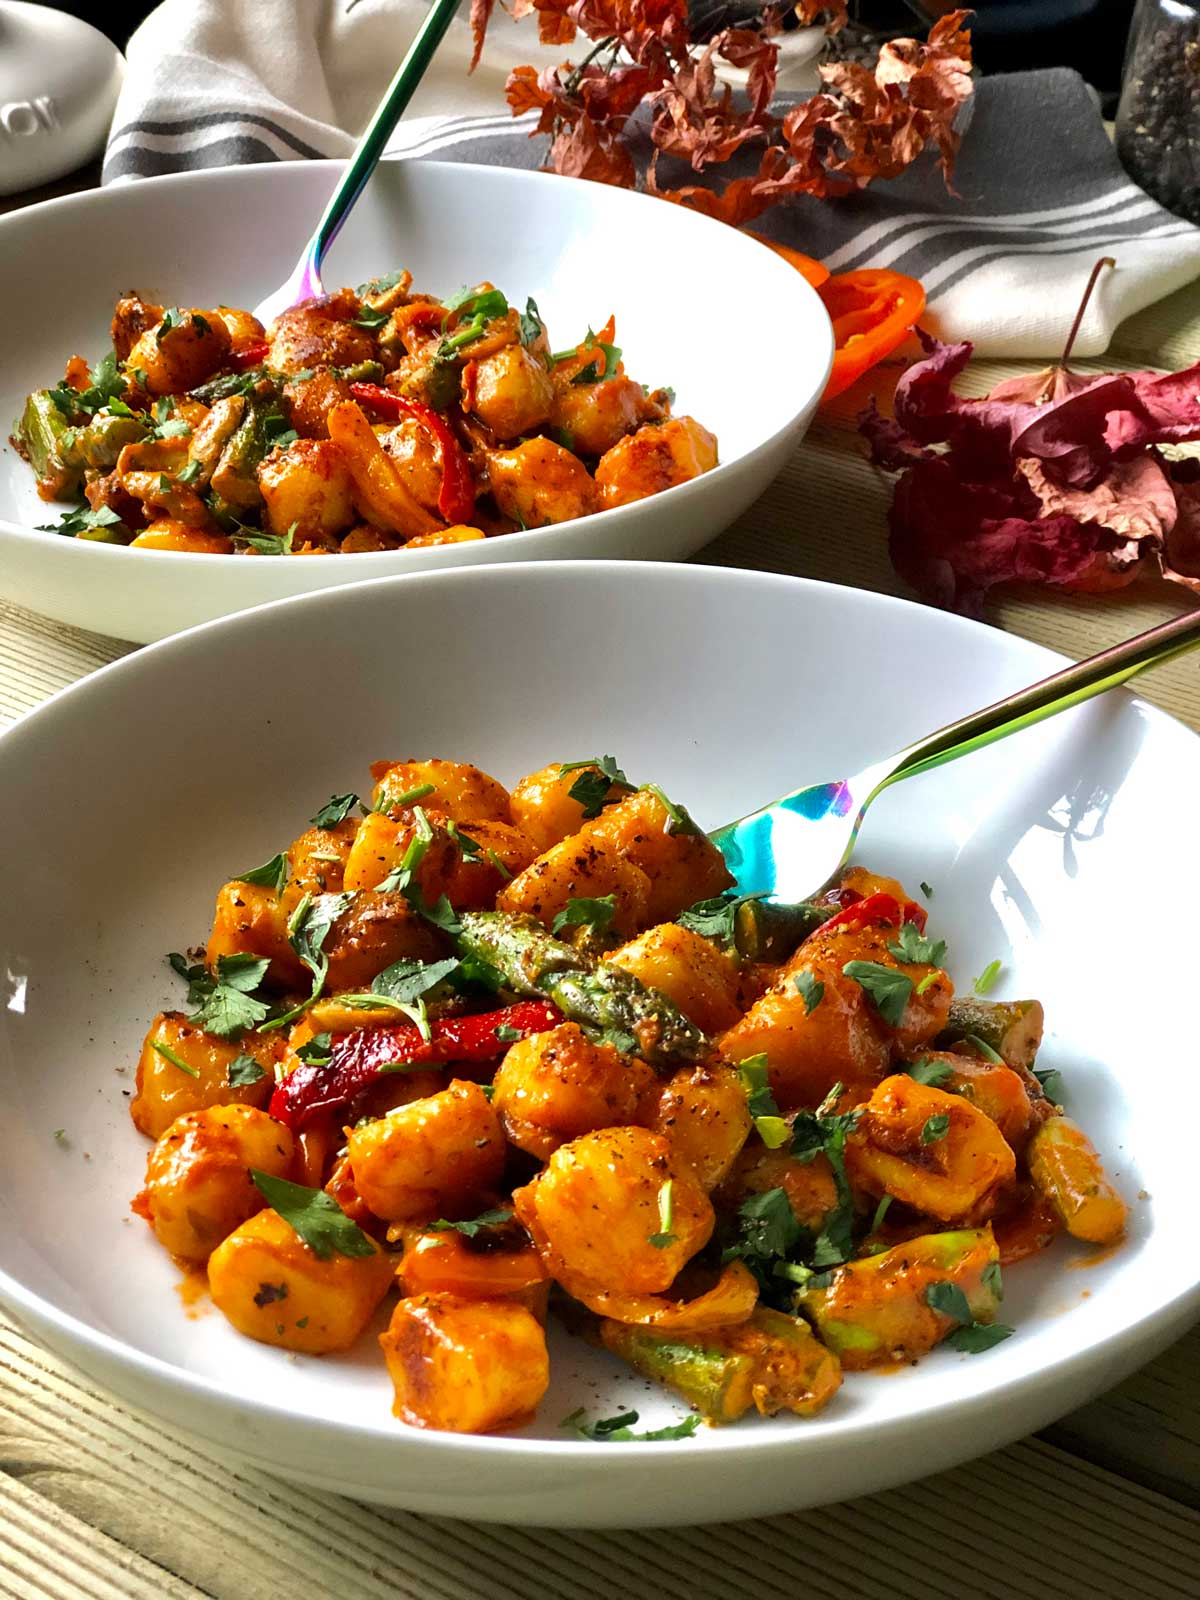 Gnocchi recipe with asparagus, peppers and mascarpone cheese sauce